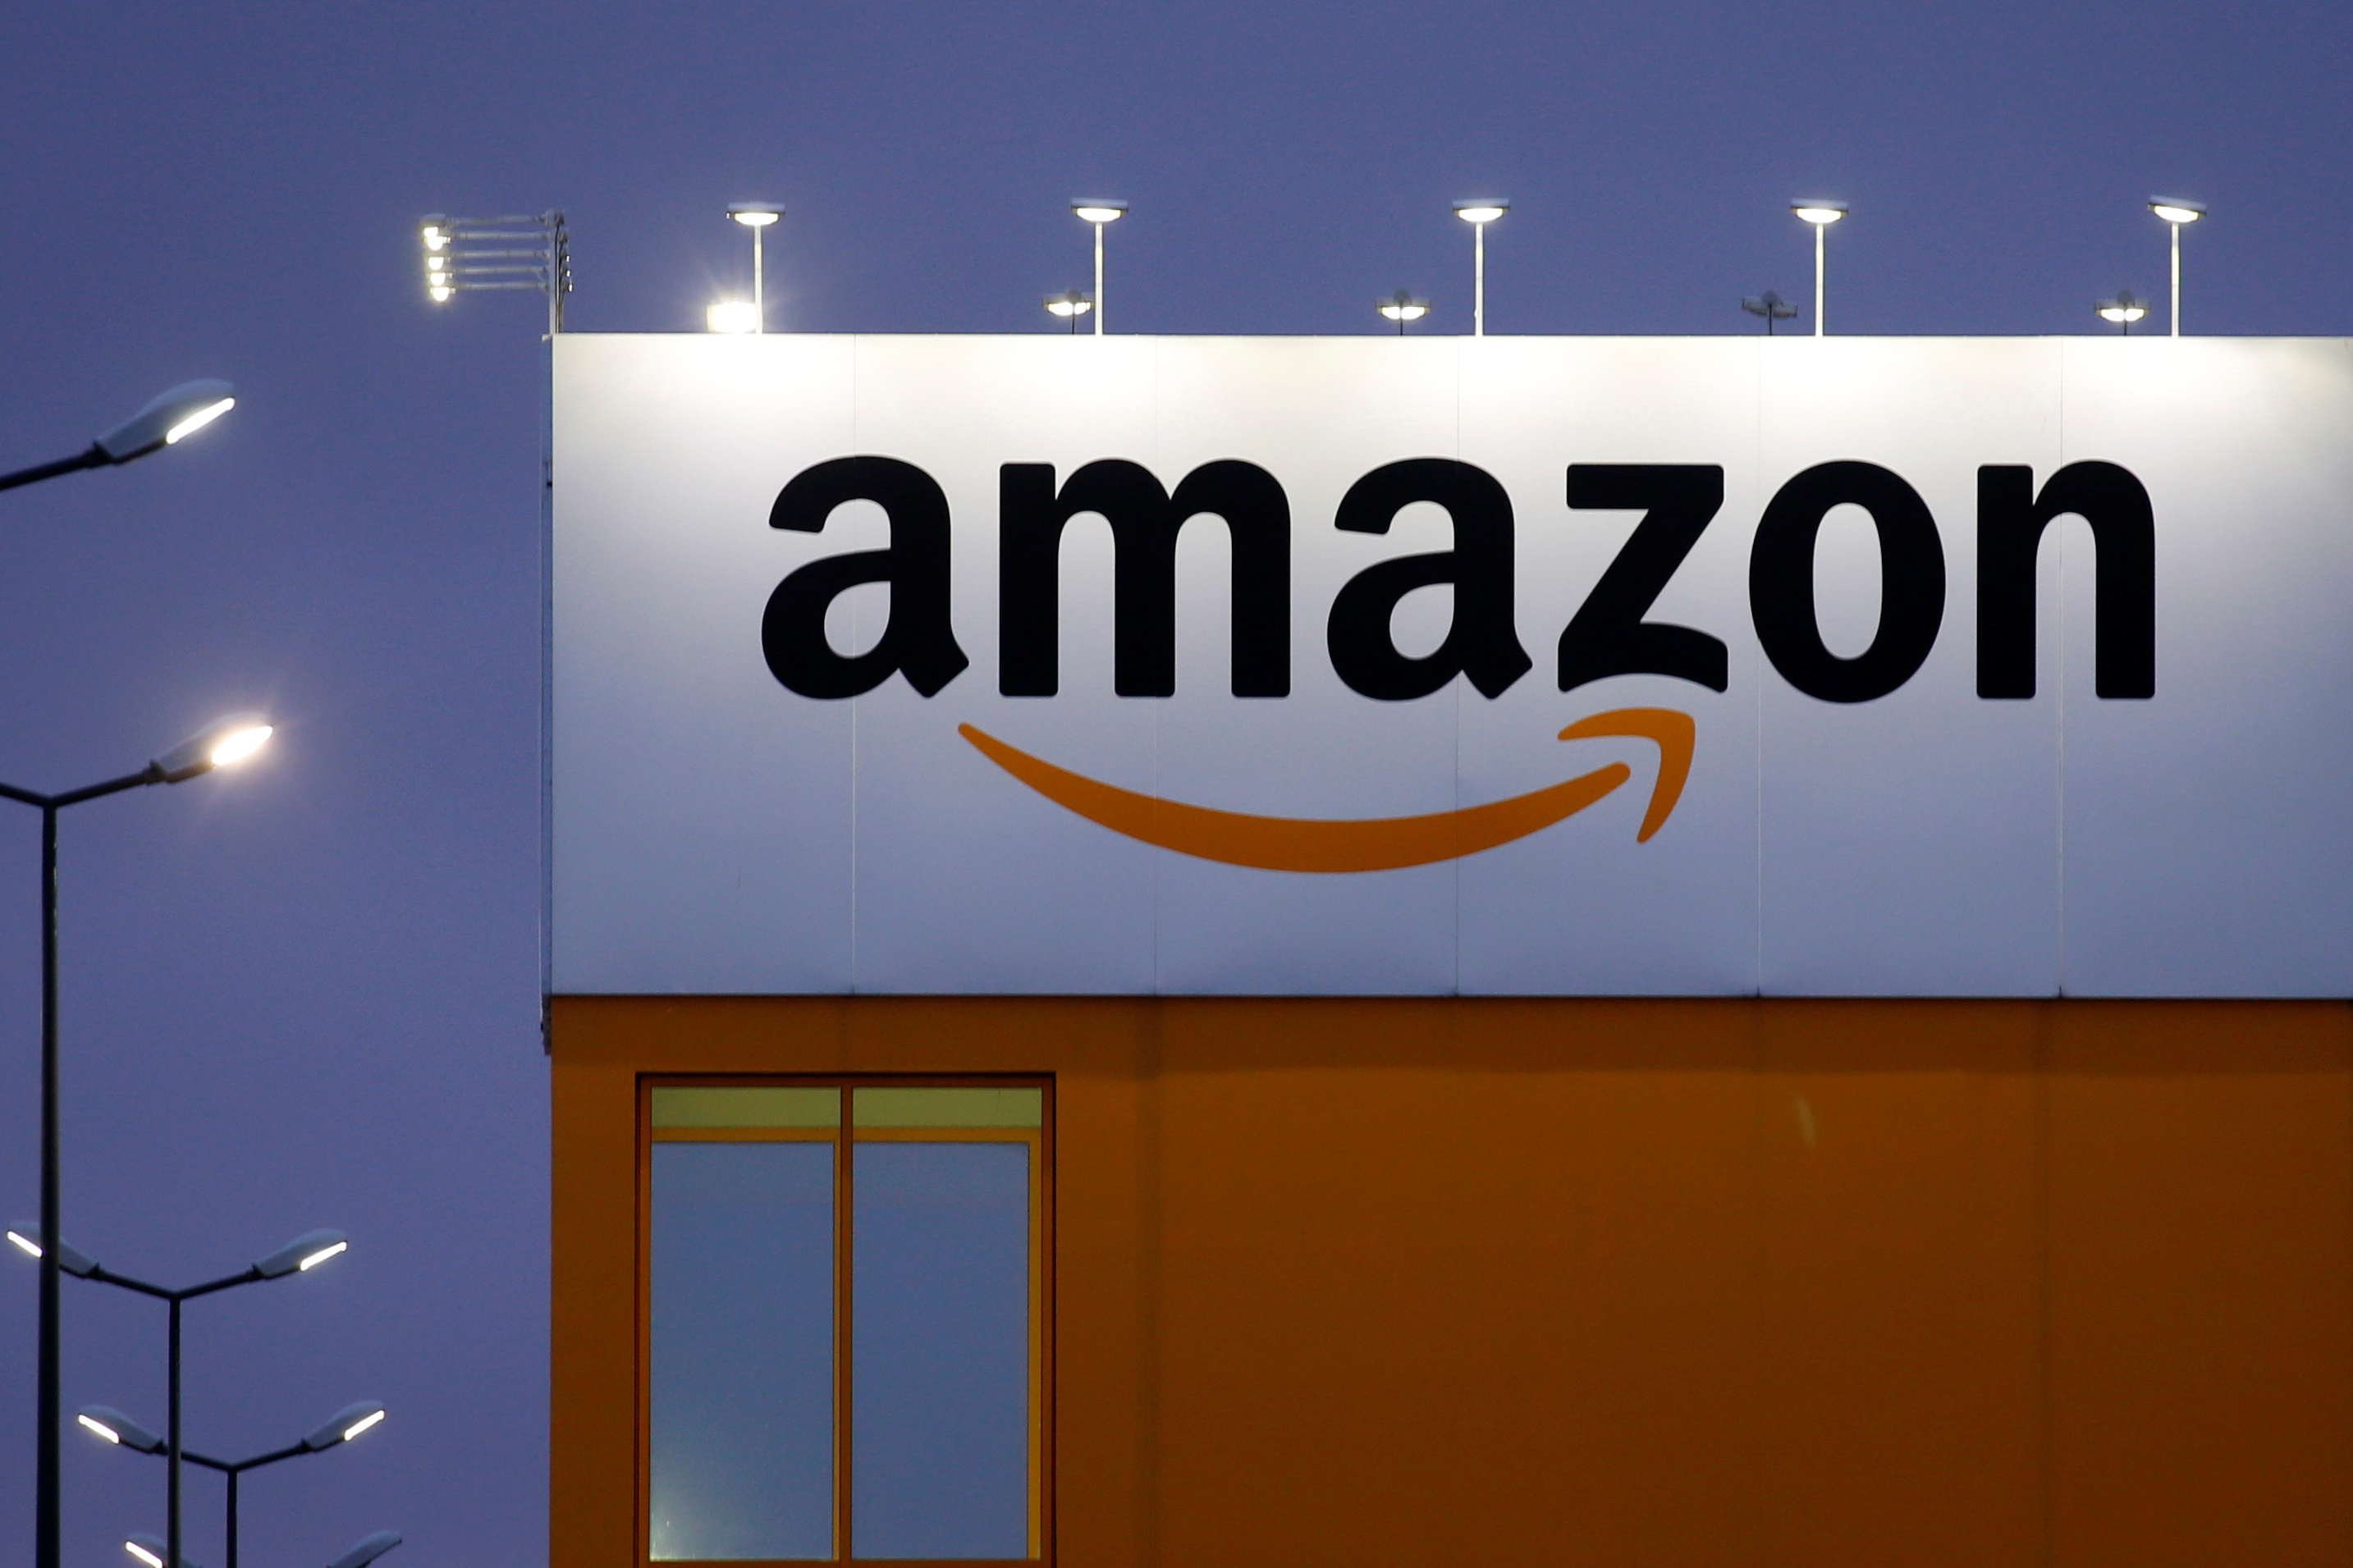 The logo of Amazon is seen at the company logistics center in Lauwin-Planque, northern France, February 20, 2017. REUTERS/Pascal Rossignol/File Photo